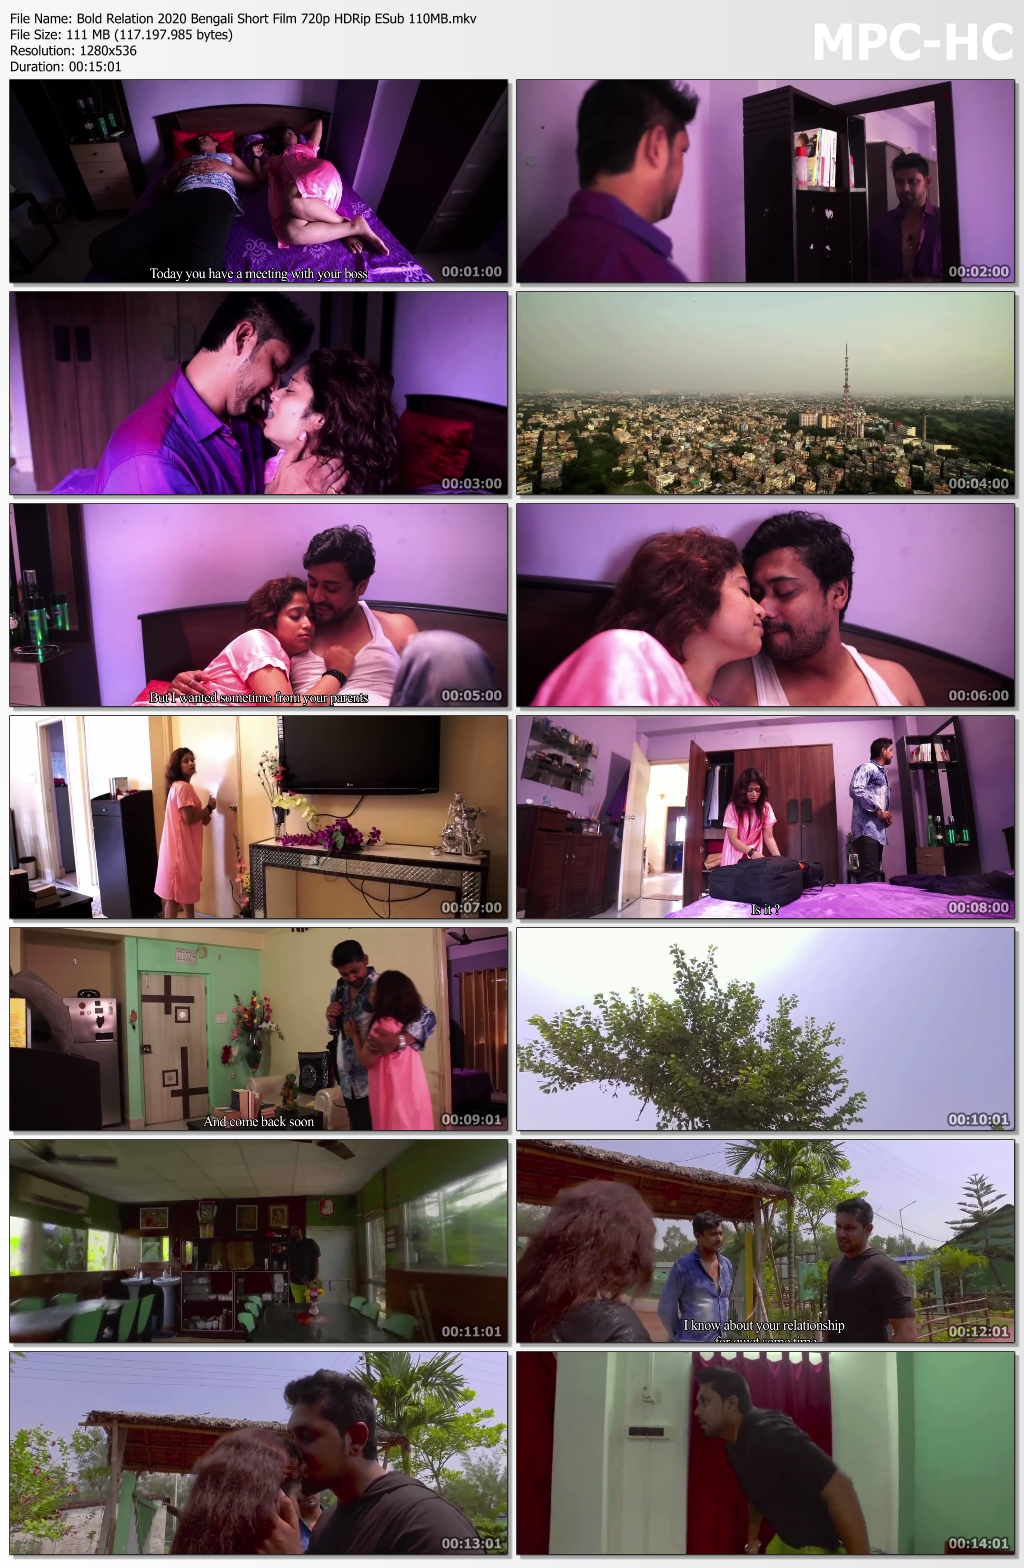 Bold-Relation-2020-Bengali-Short-Film-720p-HDRip-ESub-110-MB-mkv-thumbs